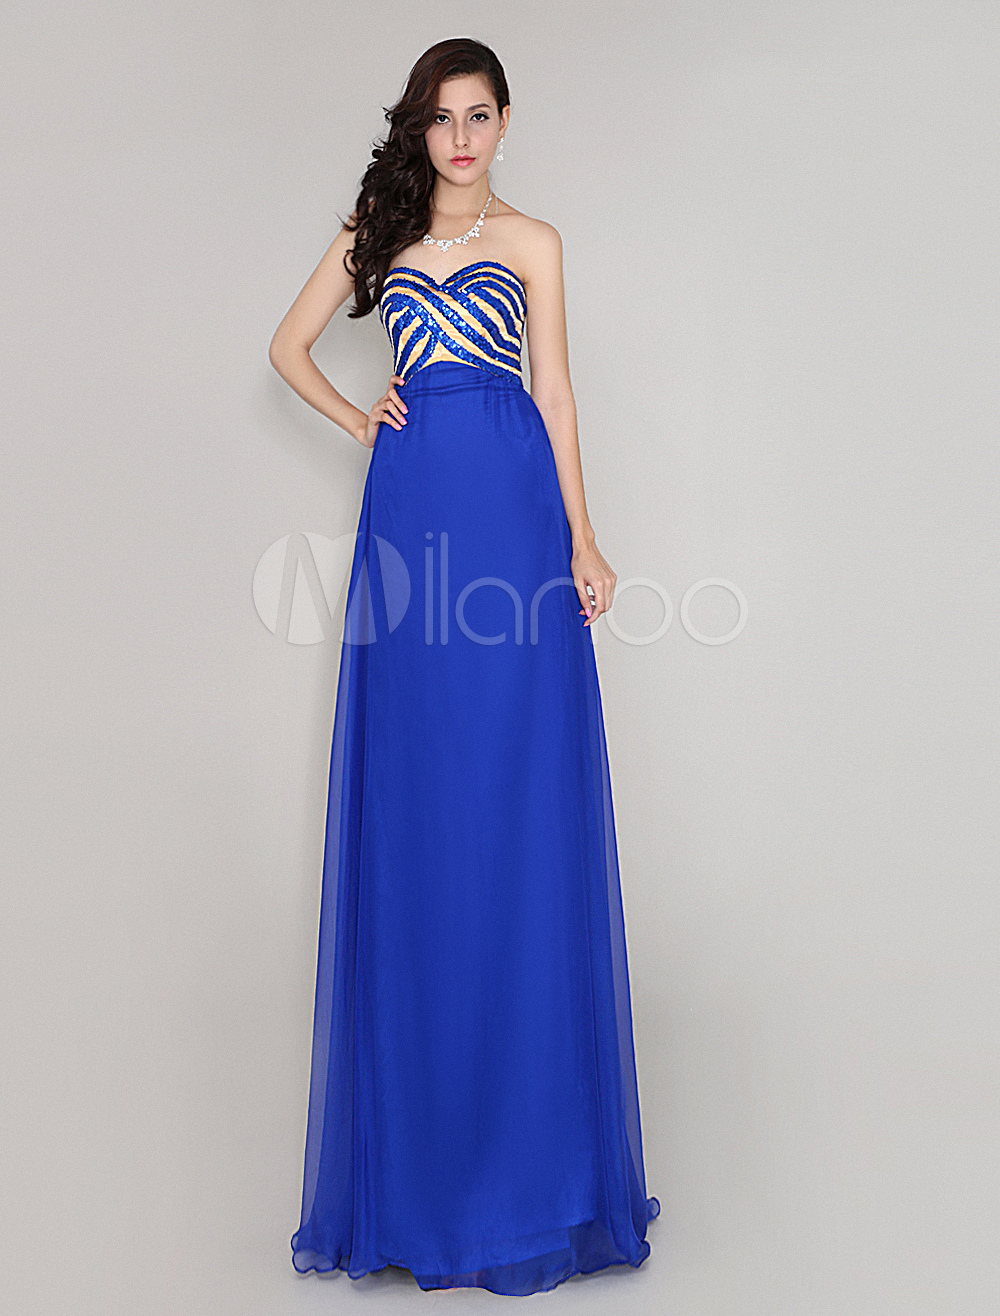 Buy Royal Blue 30D Chiffon Sequined Prom Dress for $108.89 in Milanoo store